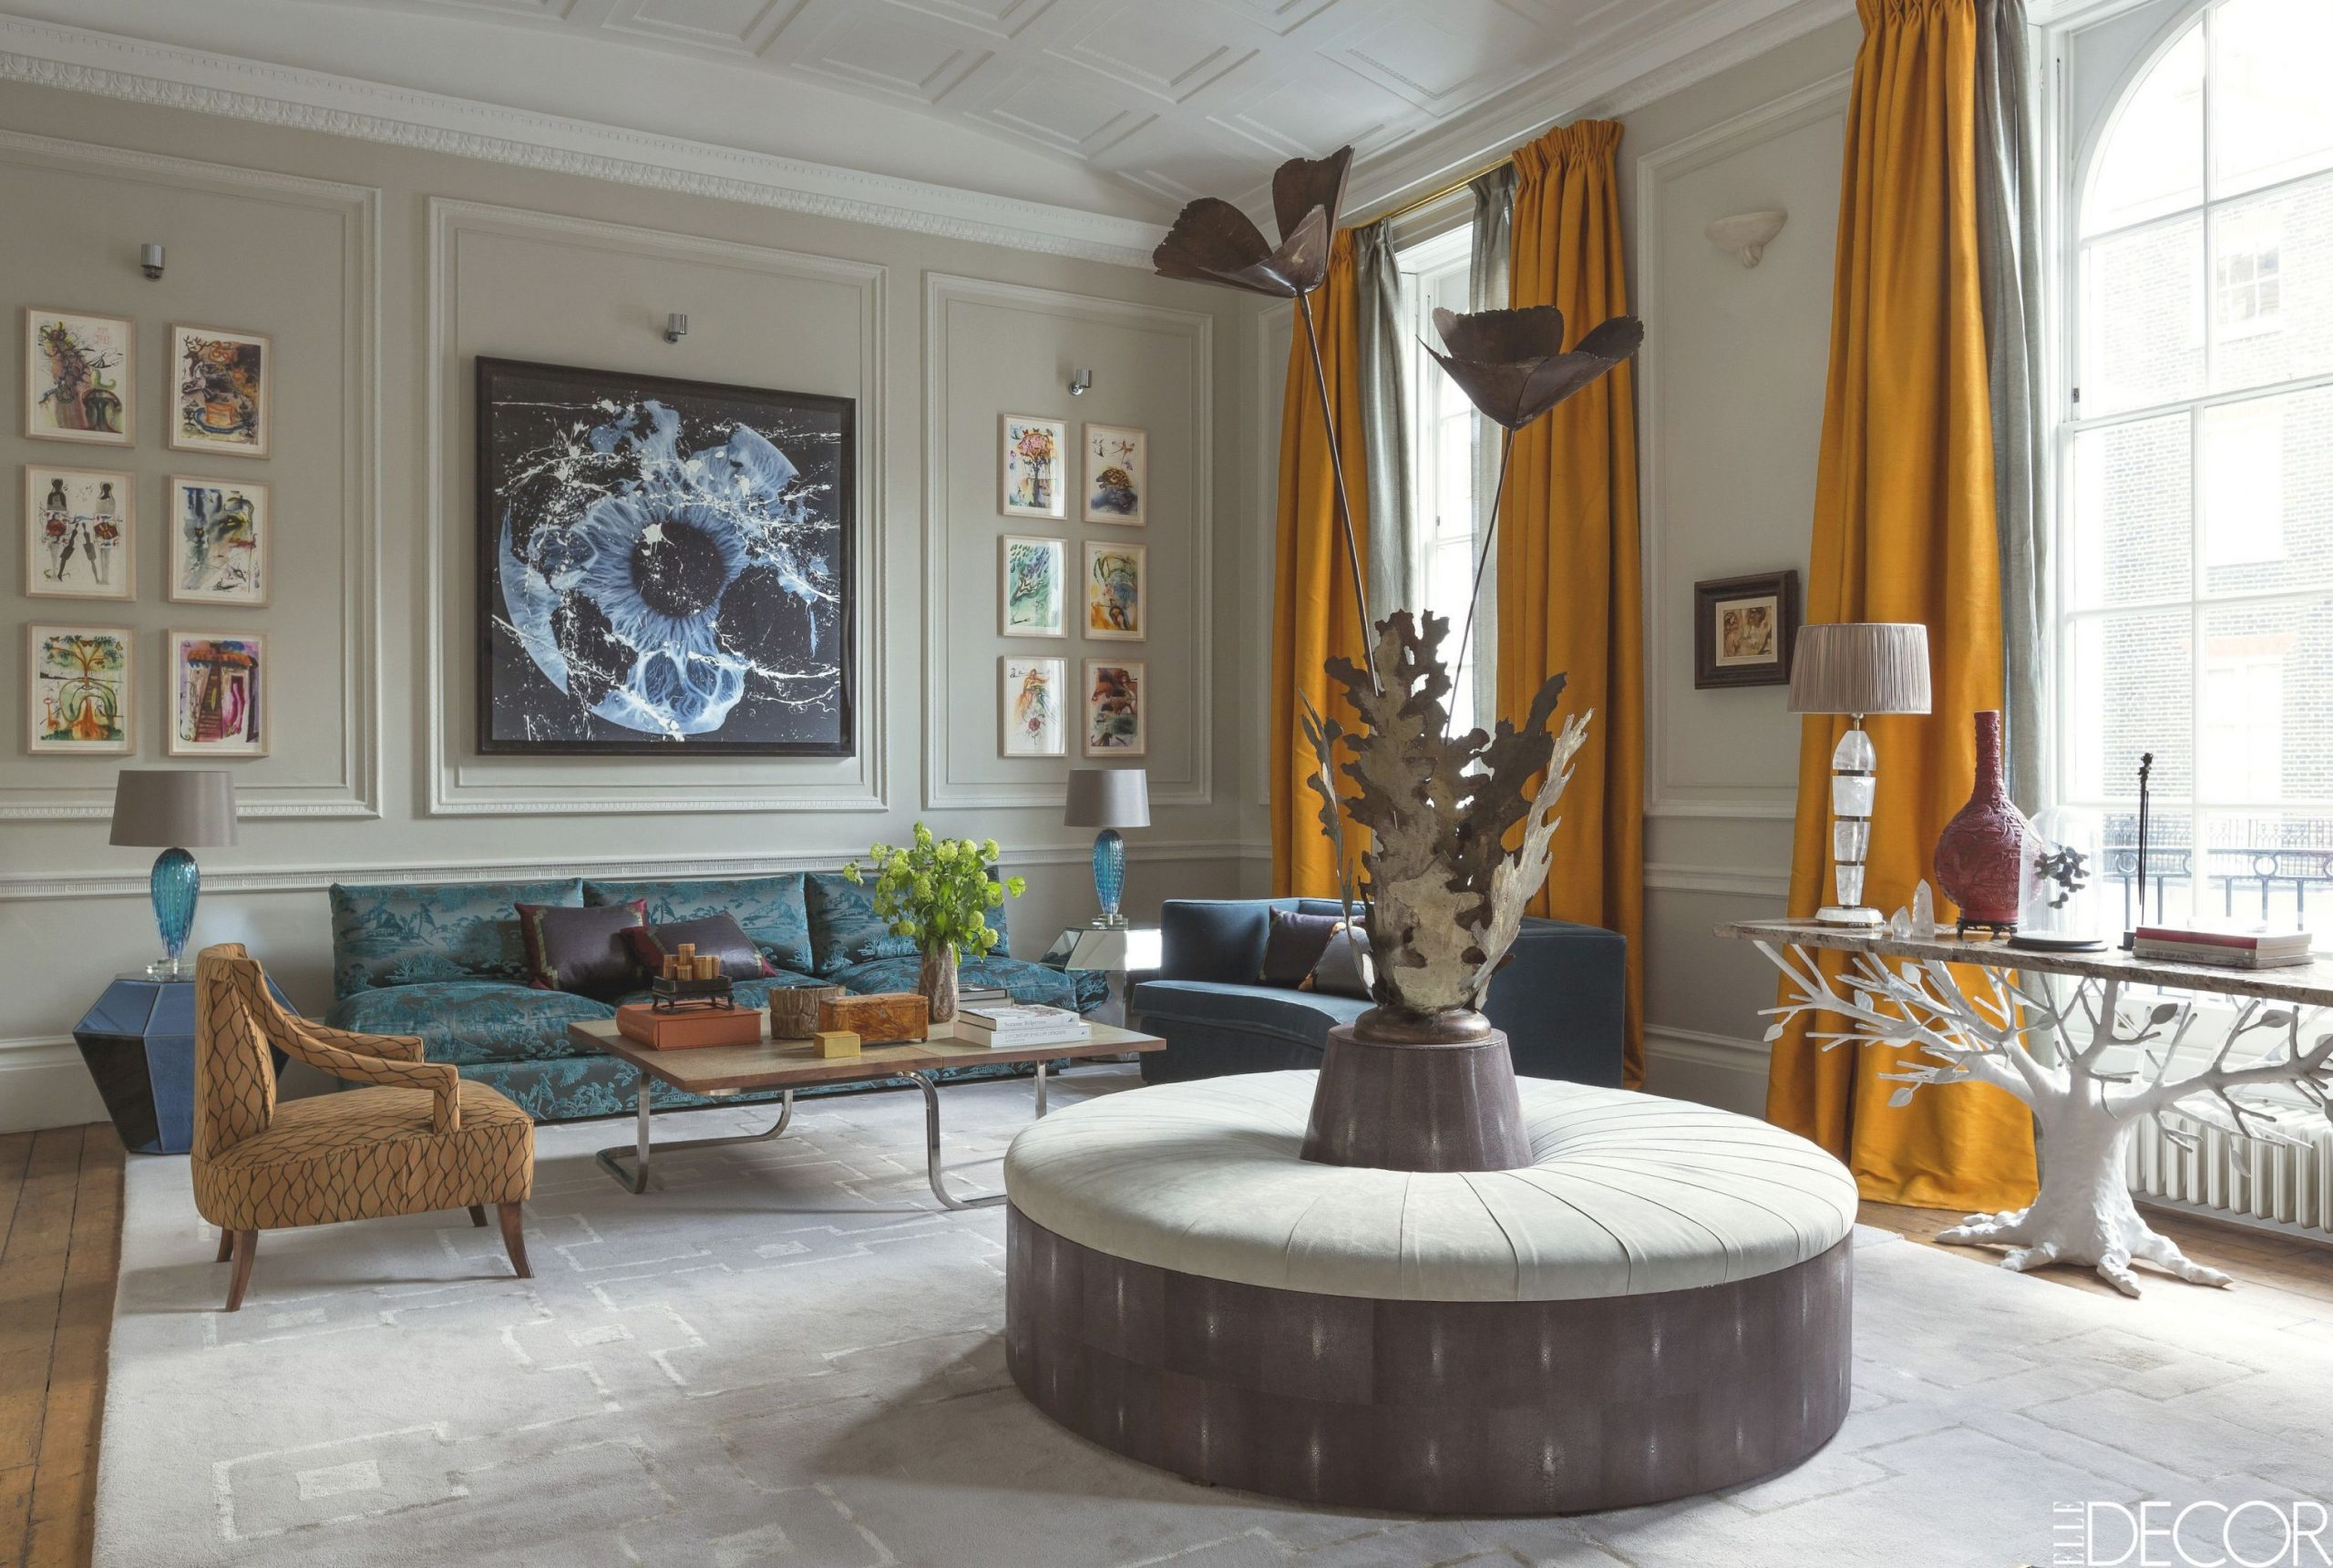 54 Luxury Living Room Ideas - Stylish Living Room Design Photos with Ideas For Living Room Decoration Modern